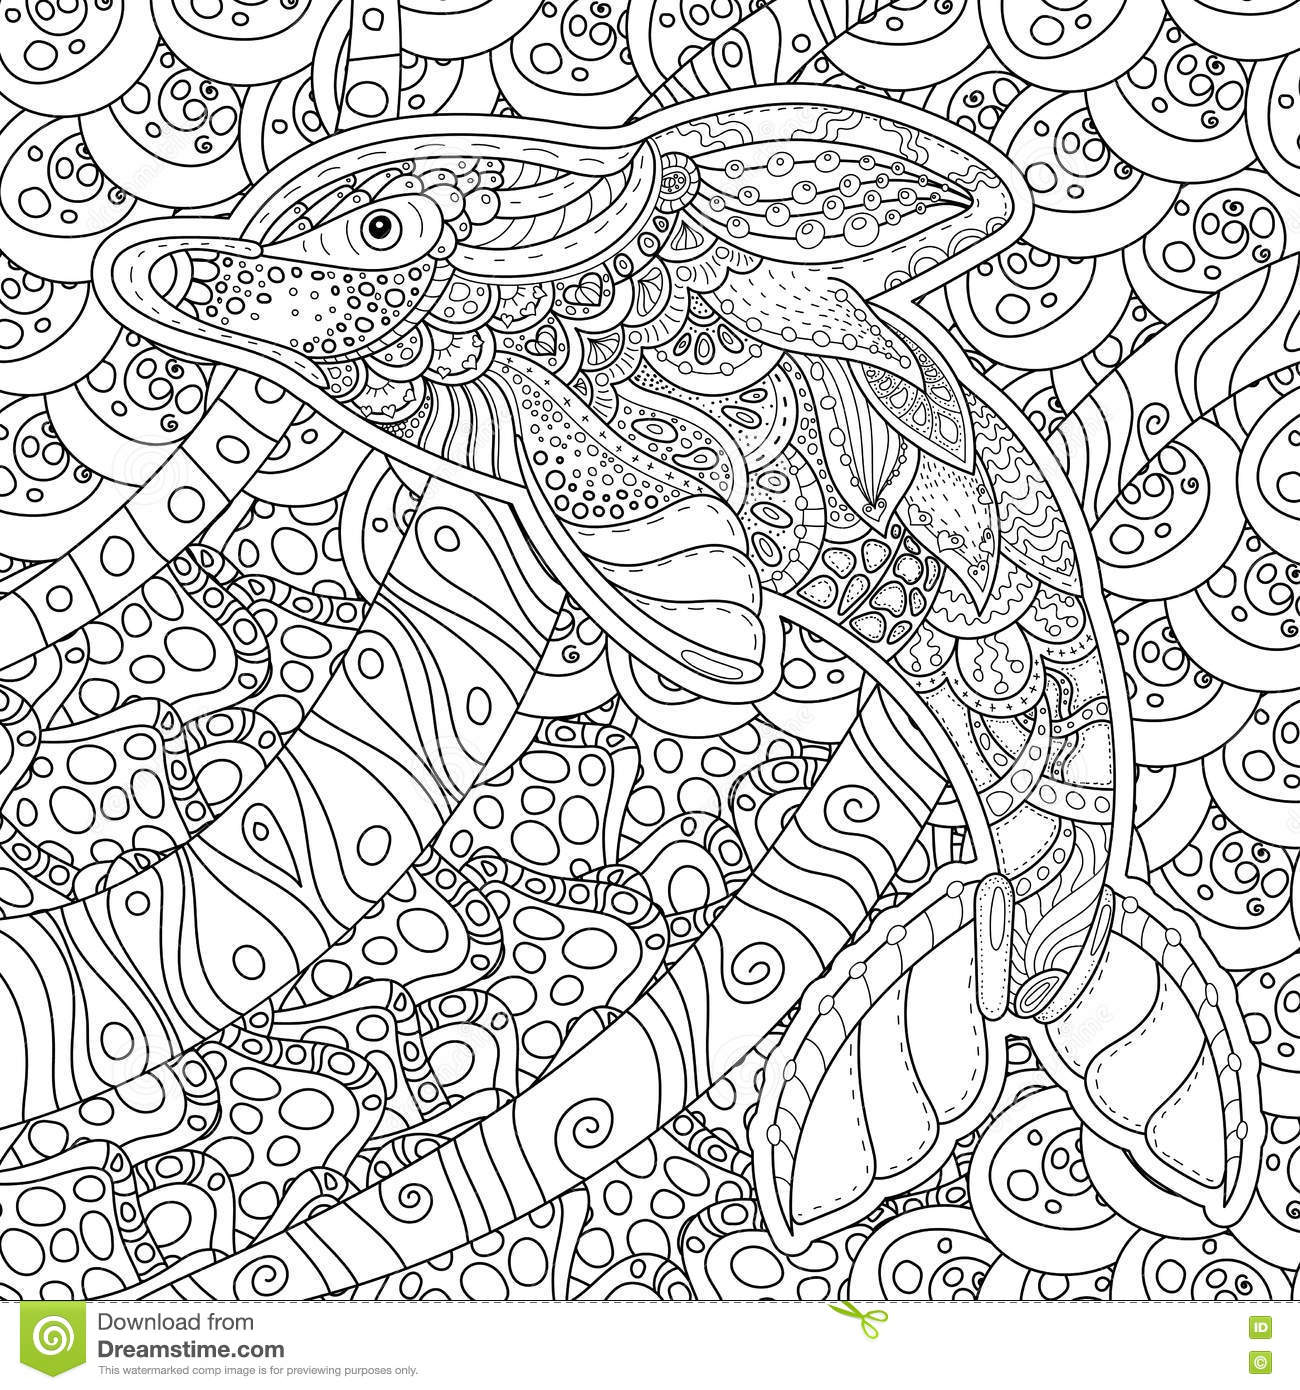 Zentangle Stylized Dolphin Adult Anti Stress Coloring